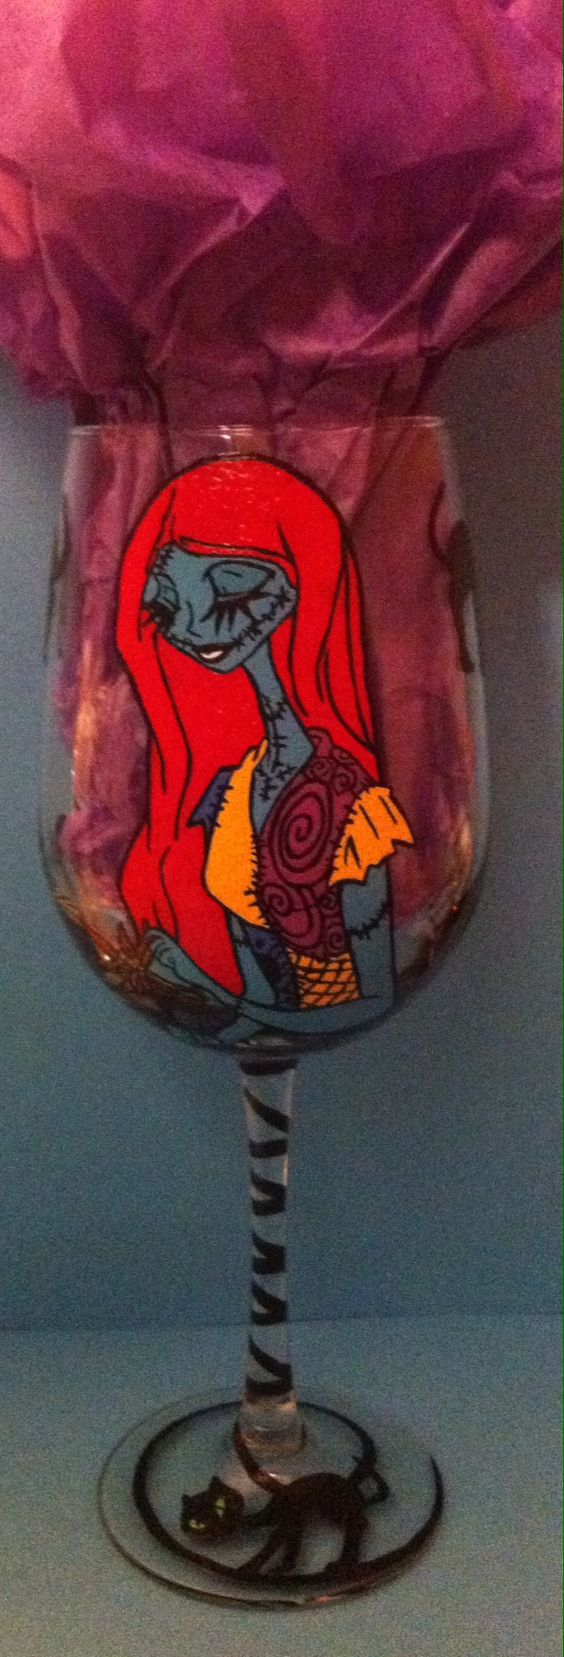 Sally From The Nightmare Before Christmas Hand Made By Allyson Prince Http Www Etsy Com Shop Painted Wine Glass Painted Wine Glasses Hand Painted Glassware